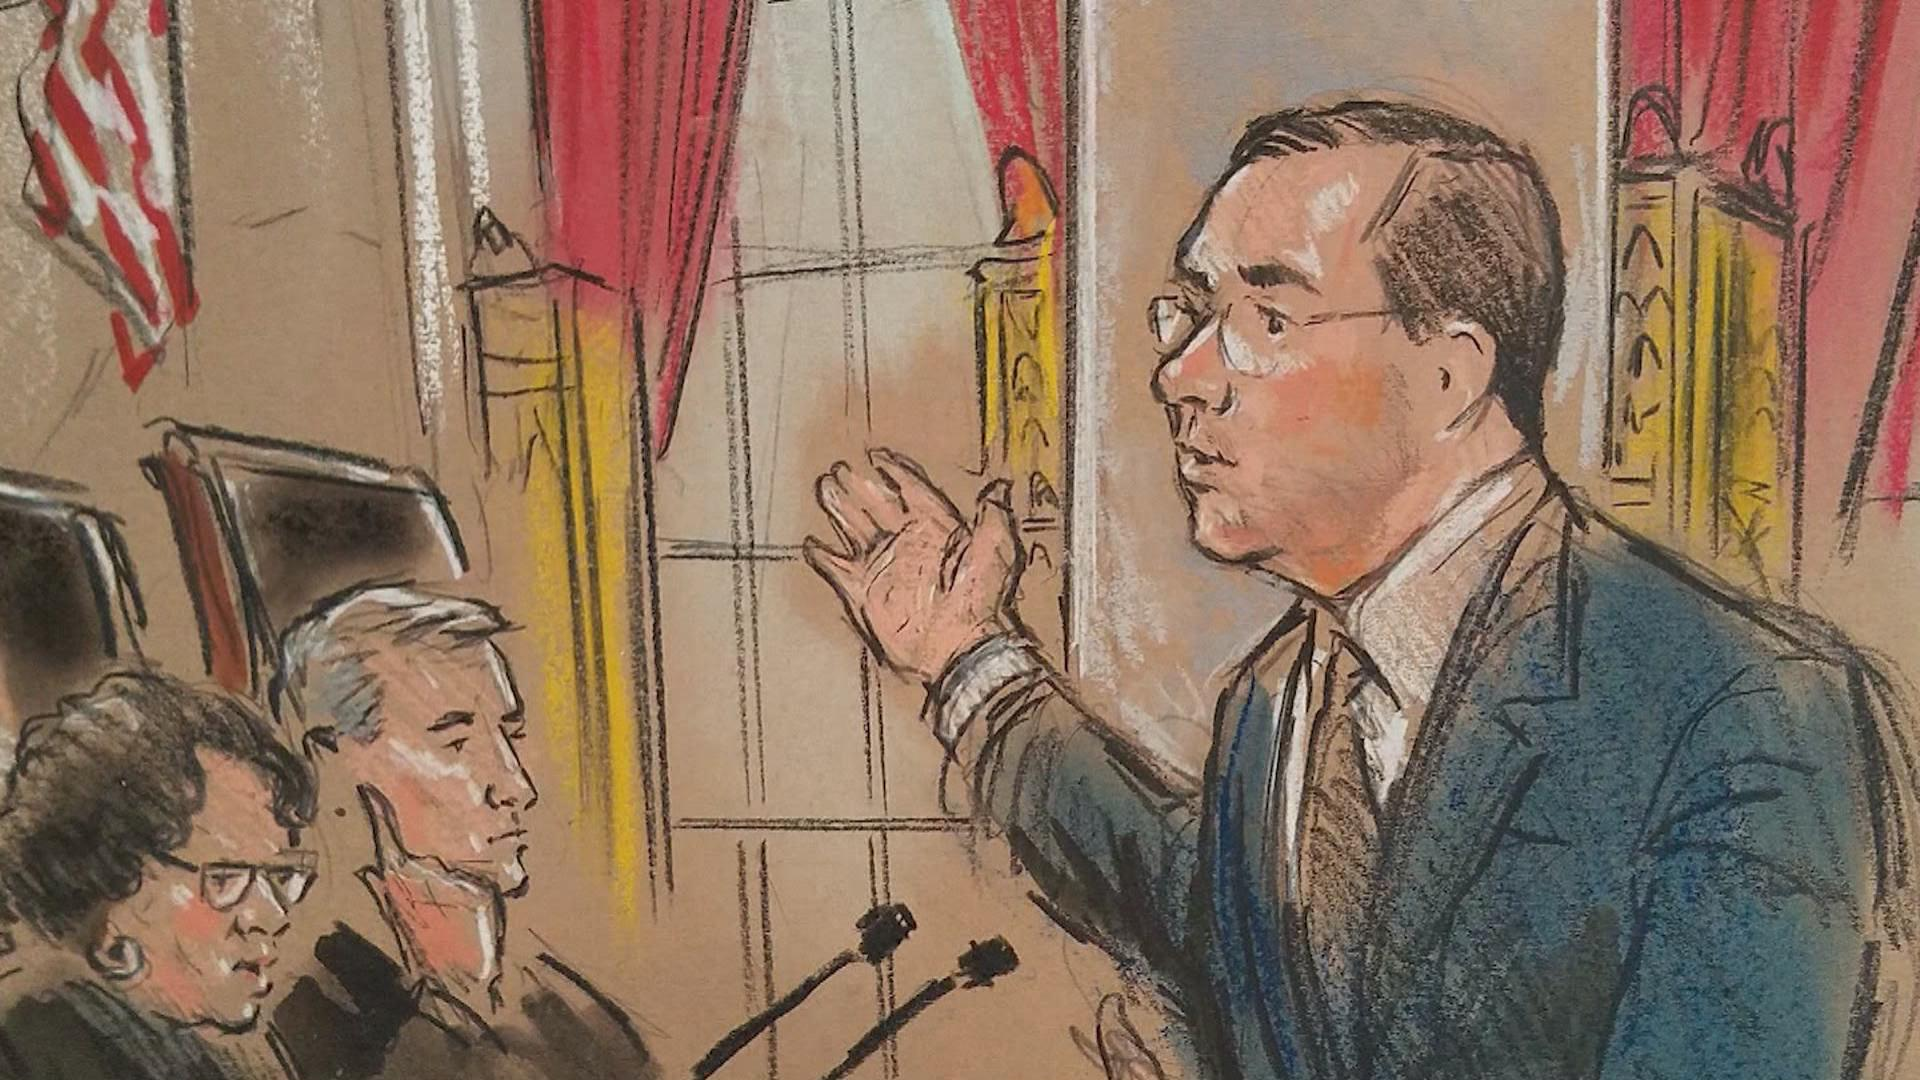 Attorneys for both sides of Janus v AFSCME presented arguments to the Supreme Court on Monday. (Courtroom sketch by Bill Hennessy)